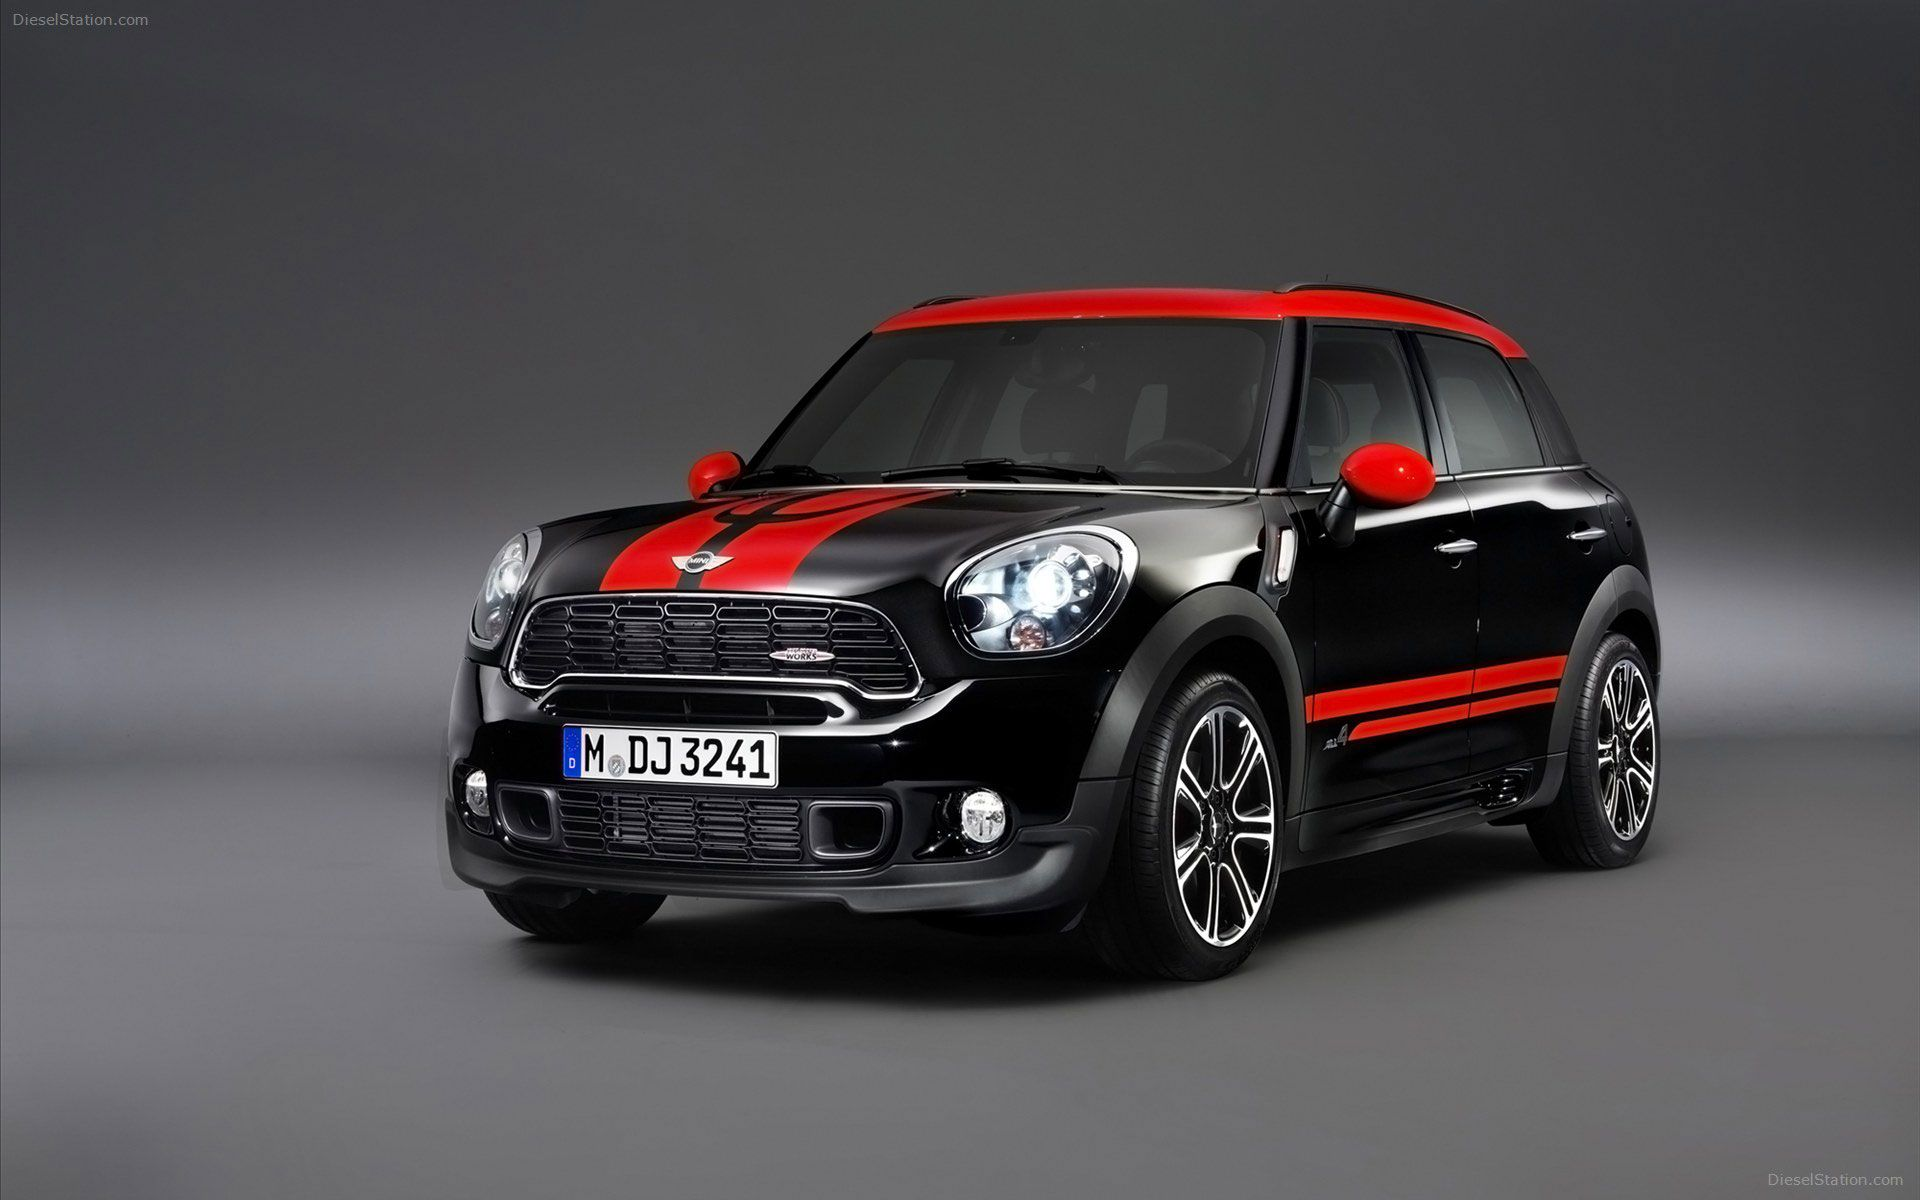 Ultra hd mini cooper jw 235 1920 1200 ultra hd abstract wallpapers pinterest